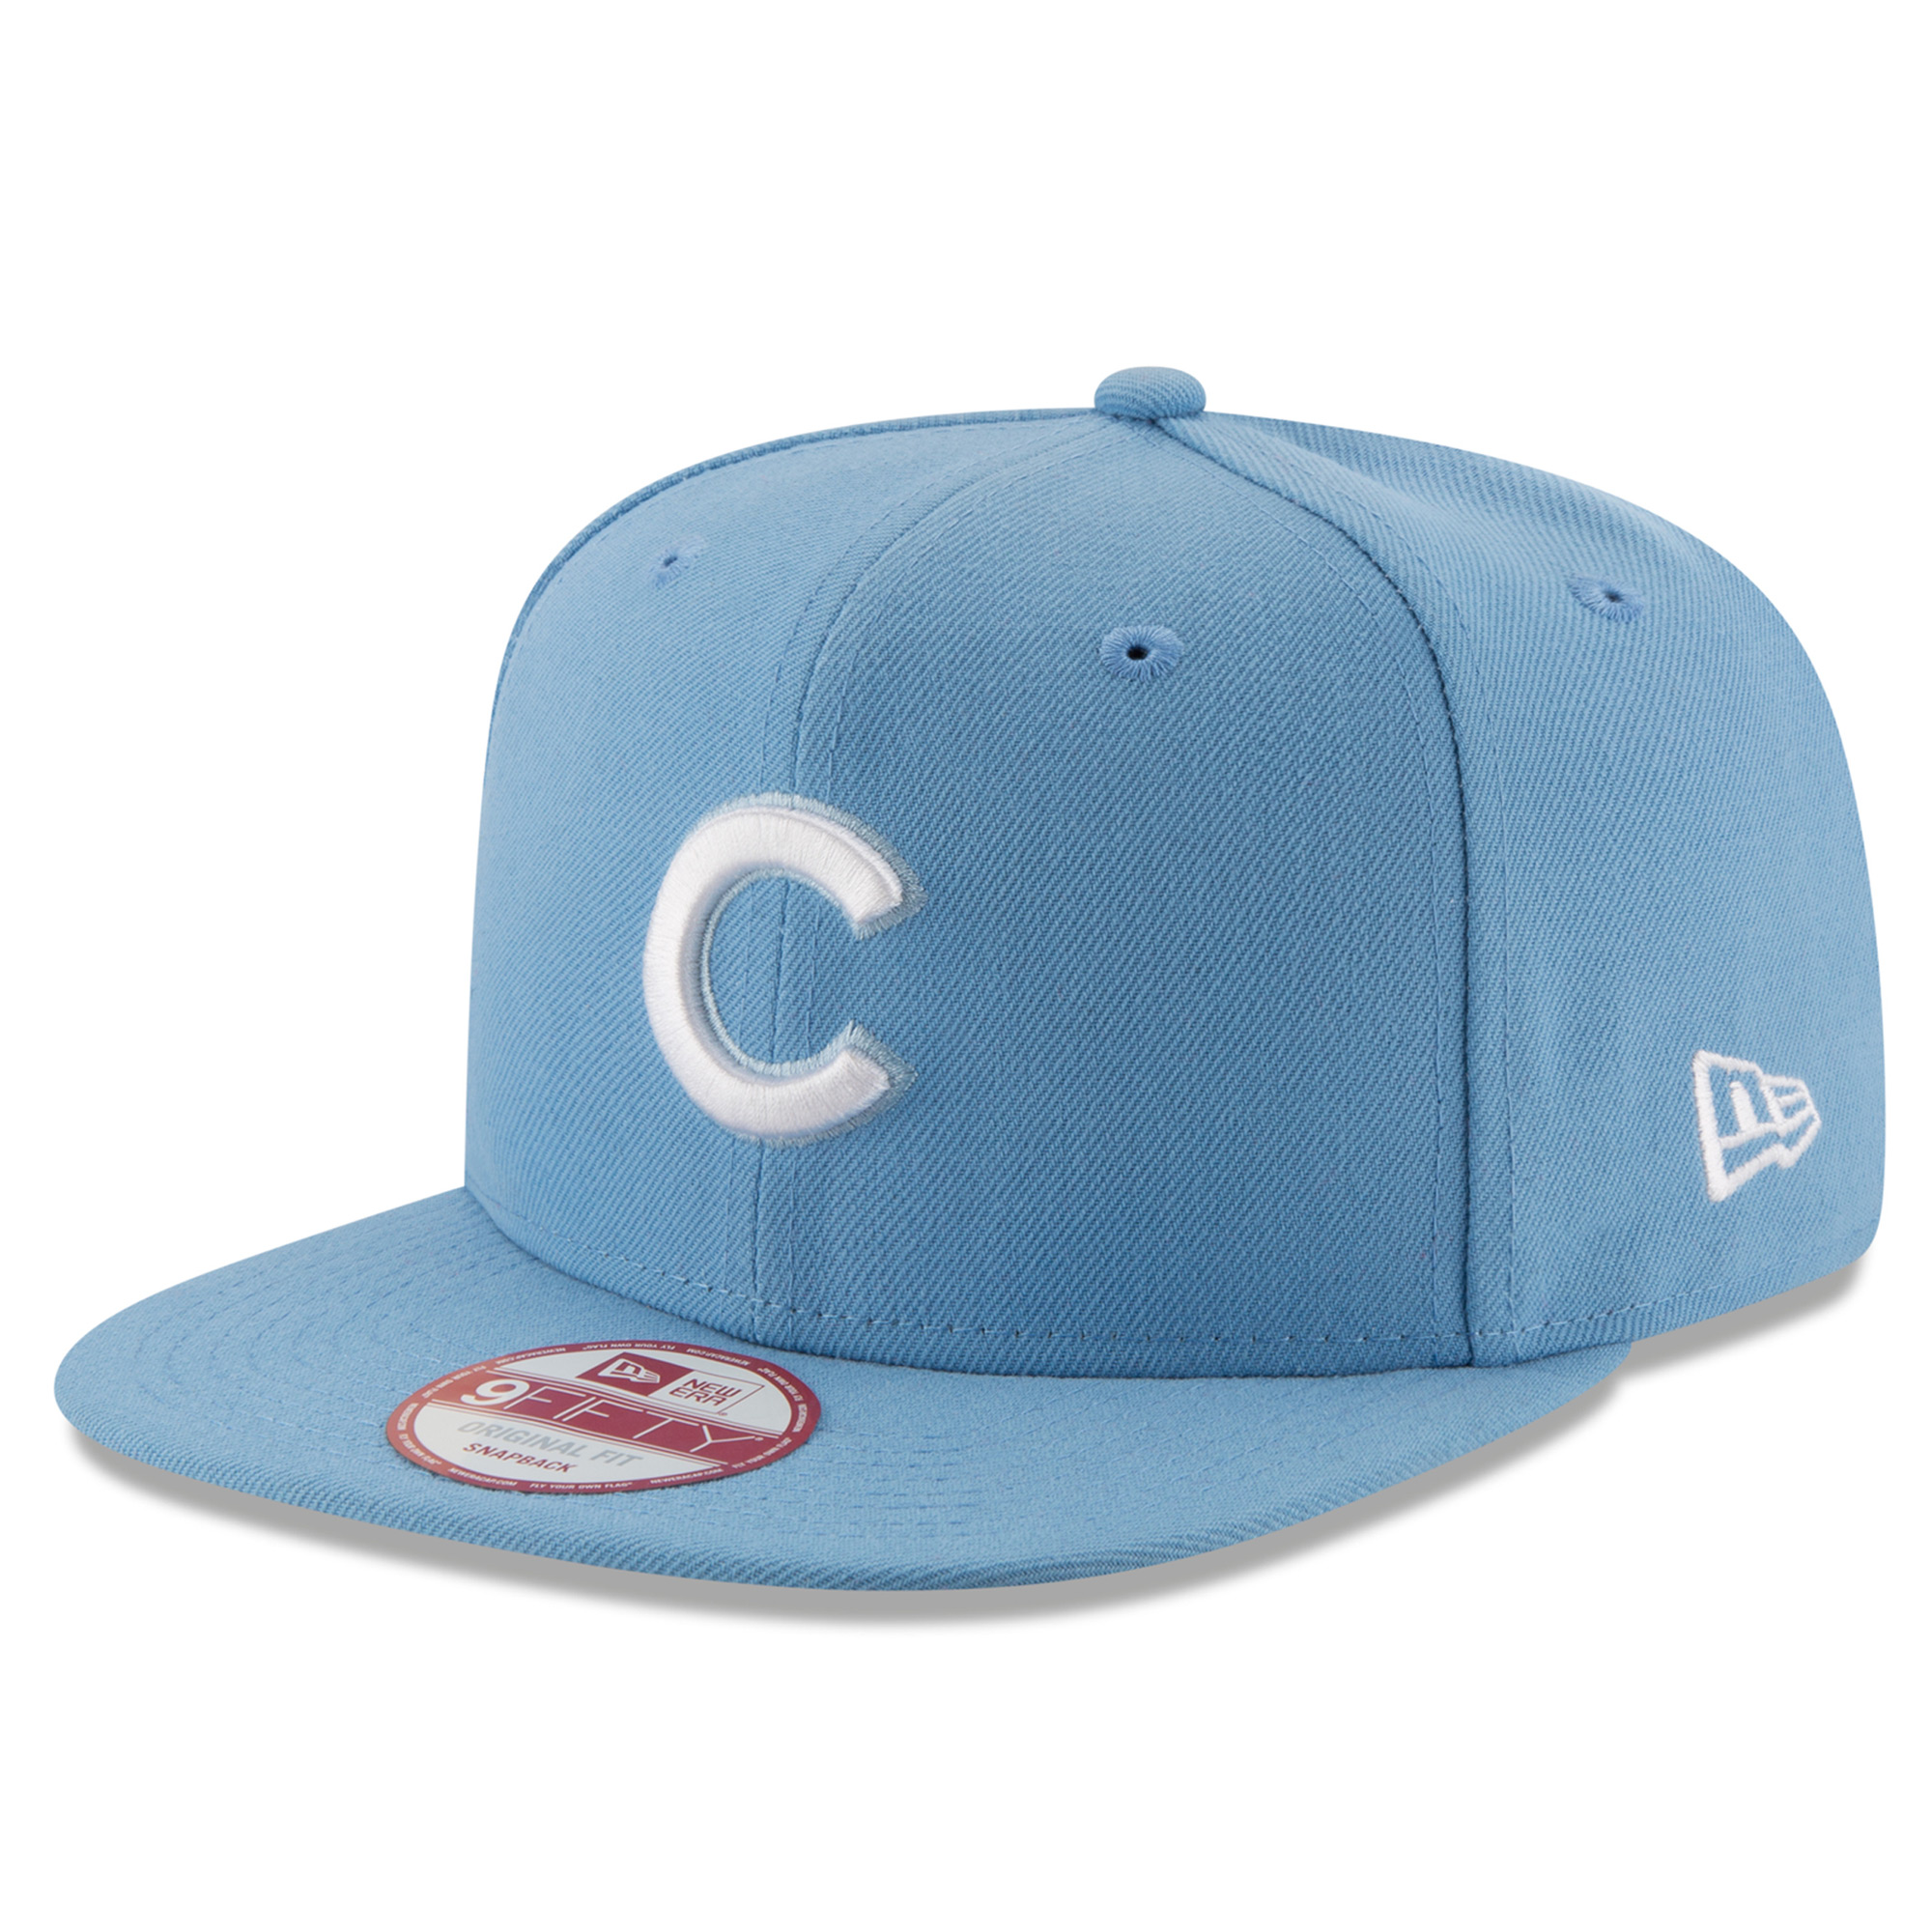 more photos 8a3d2 bd4f9 ... sweden chicago cubs new era team refresher 9fifty snapback adjustable  hat light blue osfa 1f32f f6474